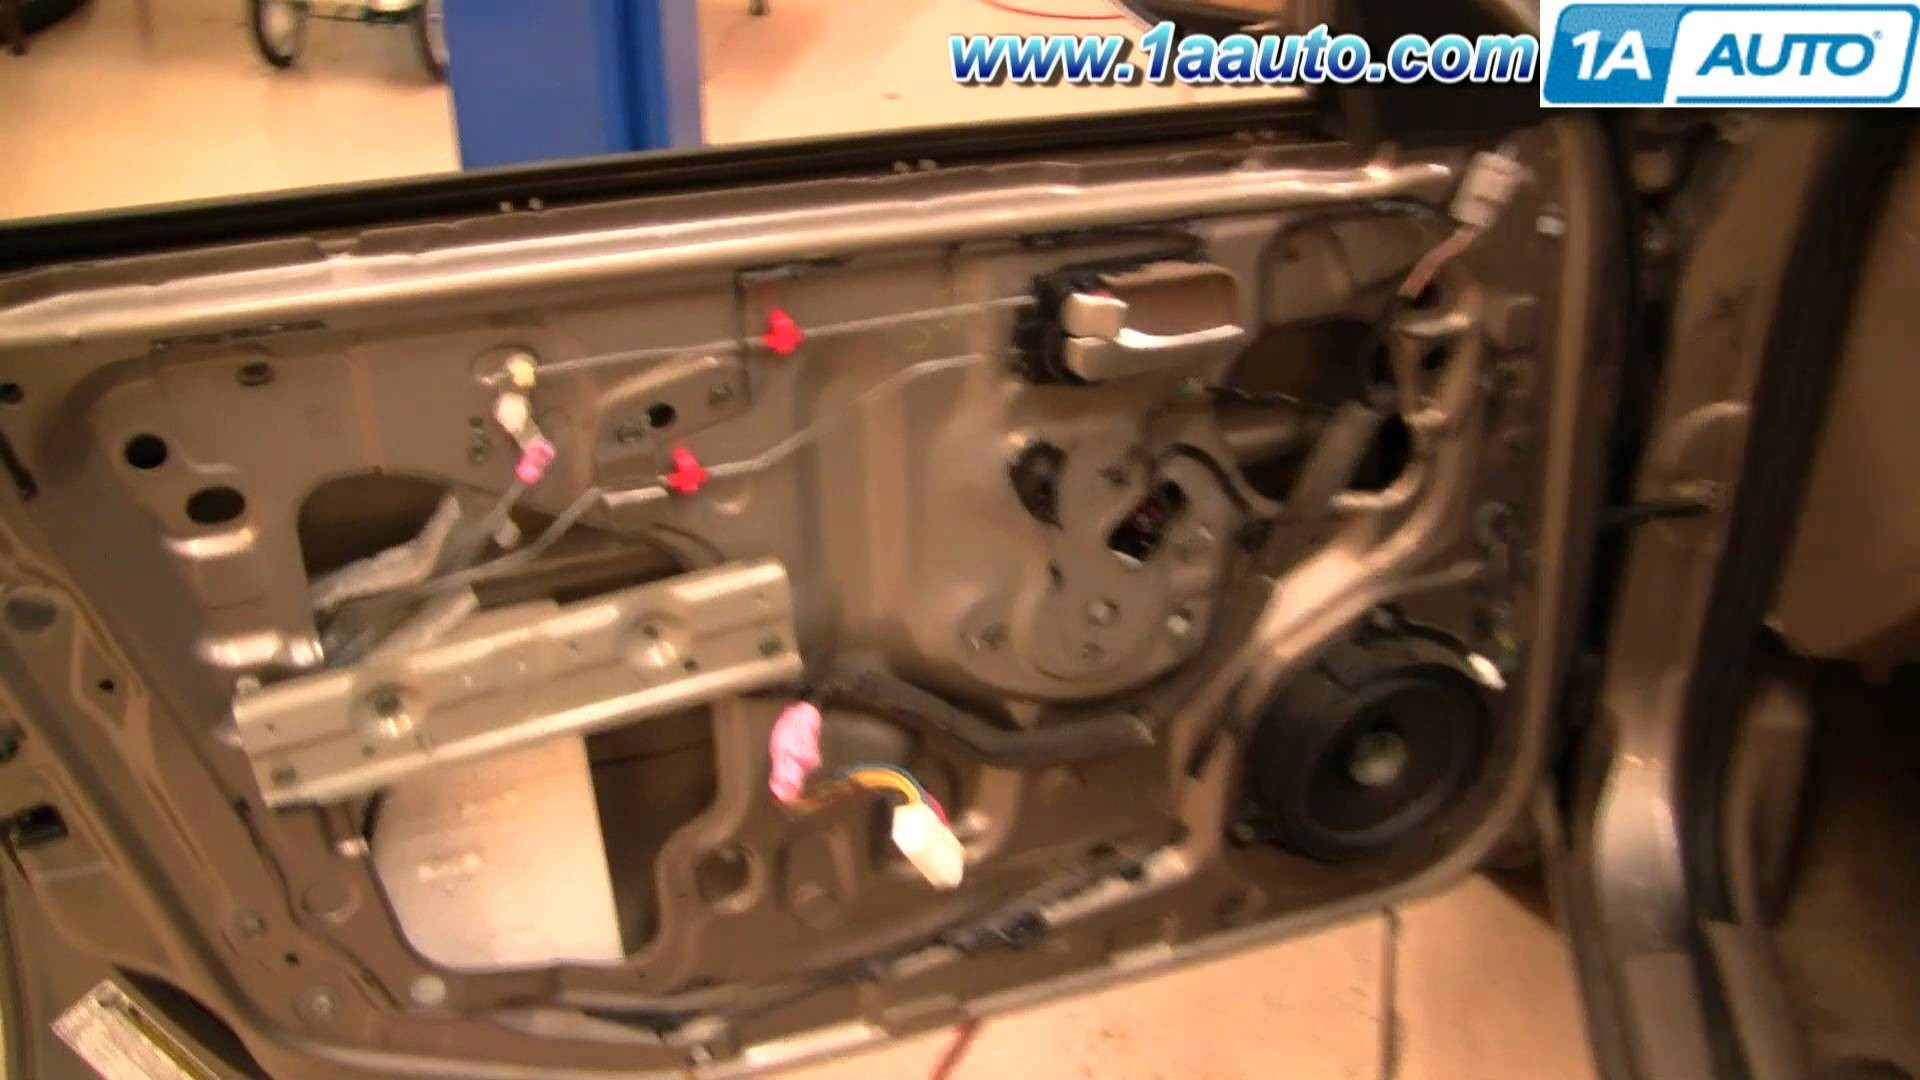 Nissan Versa Engine Diagram How To Install Replace Power Window 2008 Motor Or Regulator Sentra Of